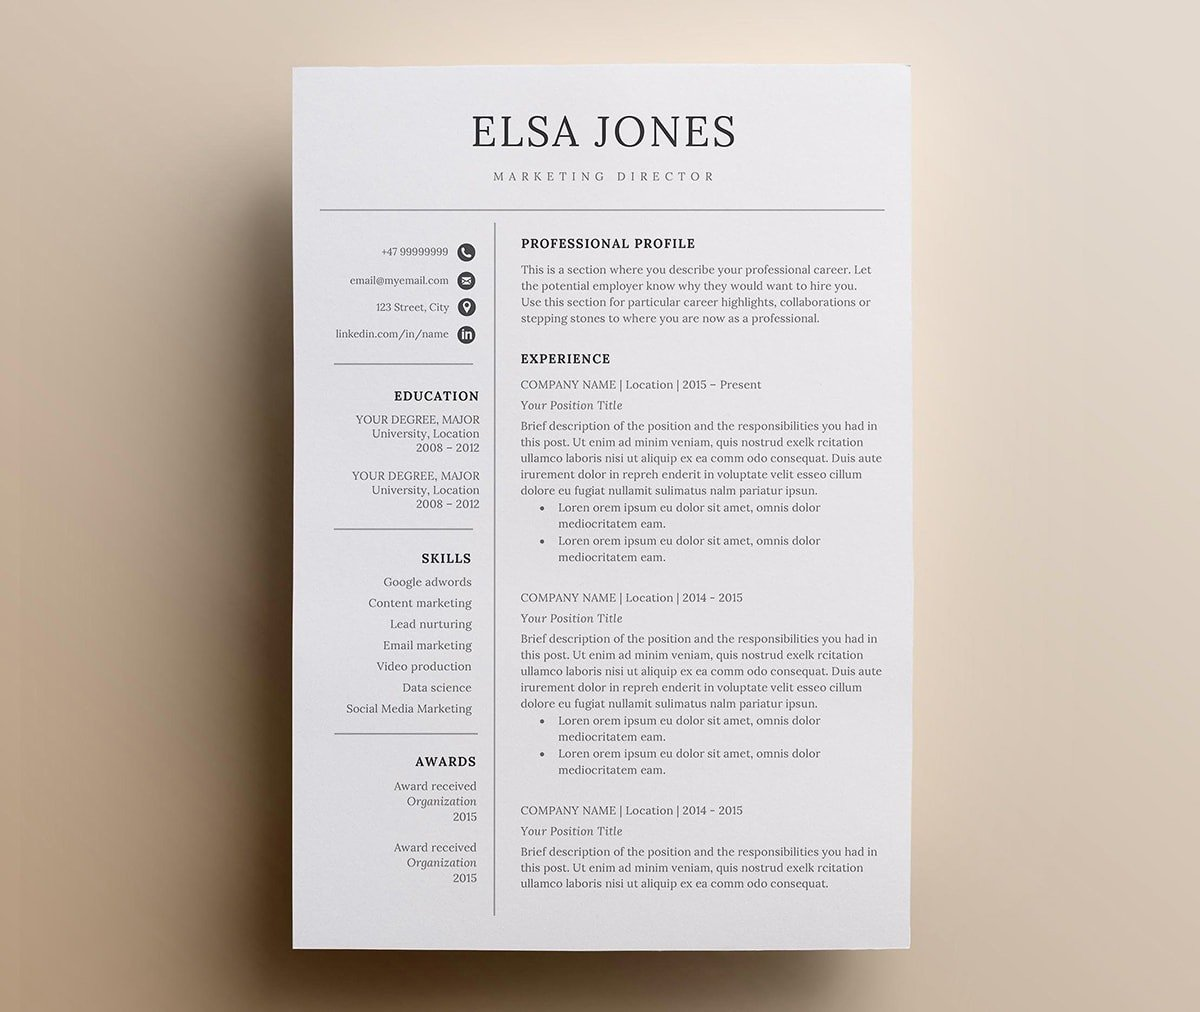 clean minimalist resume templates sleek design template wix bid manager examples for Resume Minimalist Resume Template